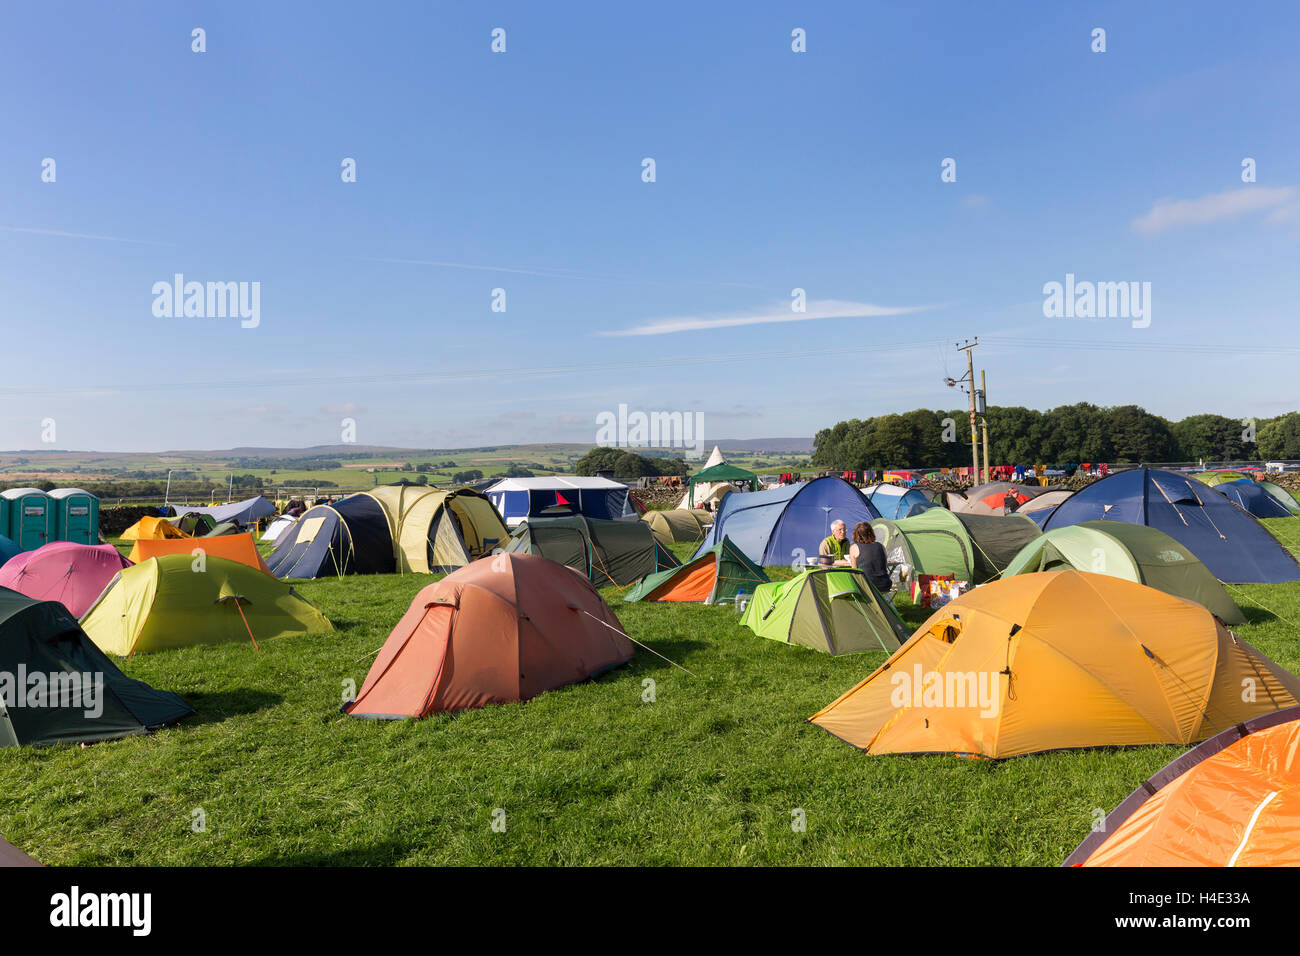 Tents on campsite, Yorkshire Dales, UK - Stock Image